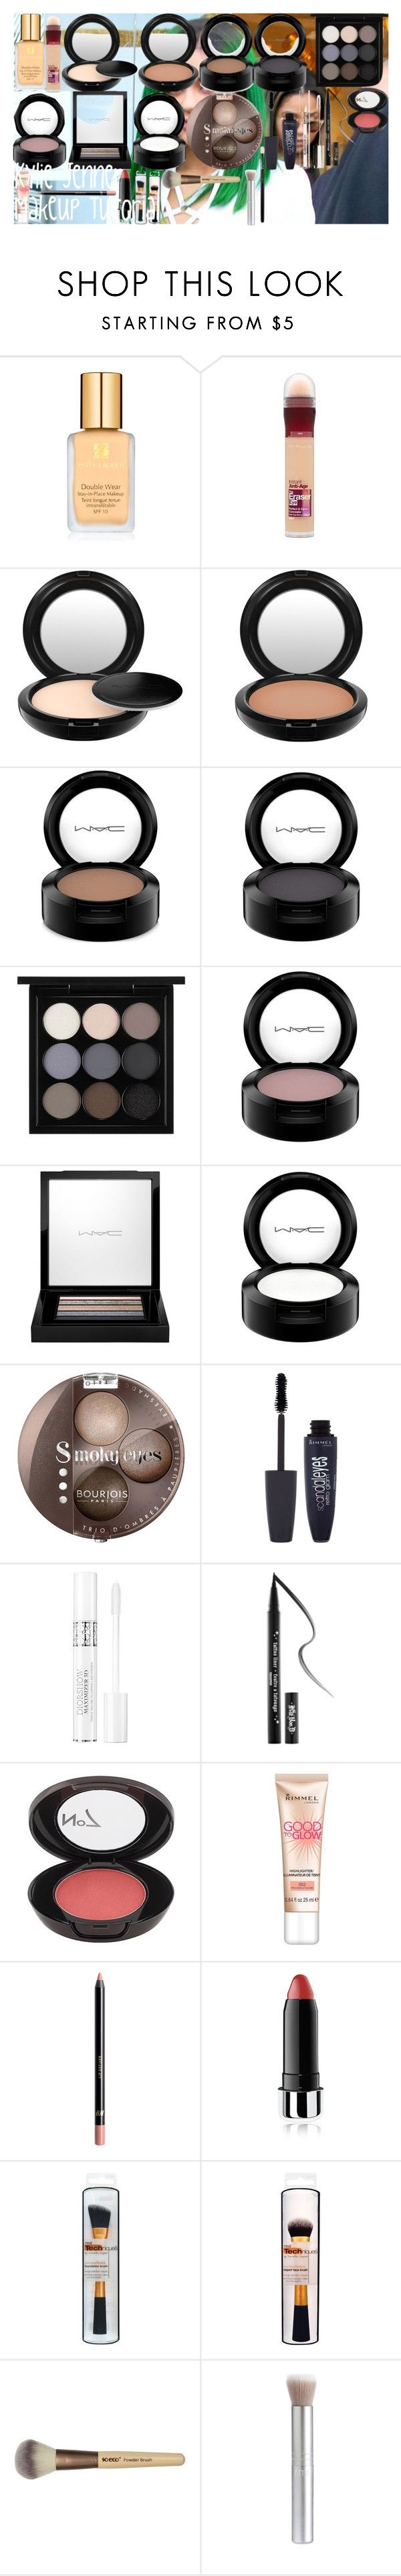 """Kylie Jenner Makeup Tutorial"" by oroartye-1 on Polyvore featuring beauty, Estée Lauder, Maybelline, MAC Cosmetics, Bourjois, Rimmel, Christian Dior, Kat Von D, Boots No7 and H&M"